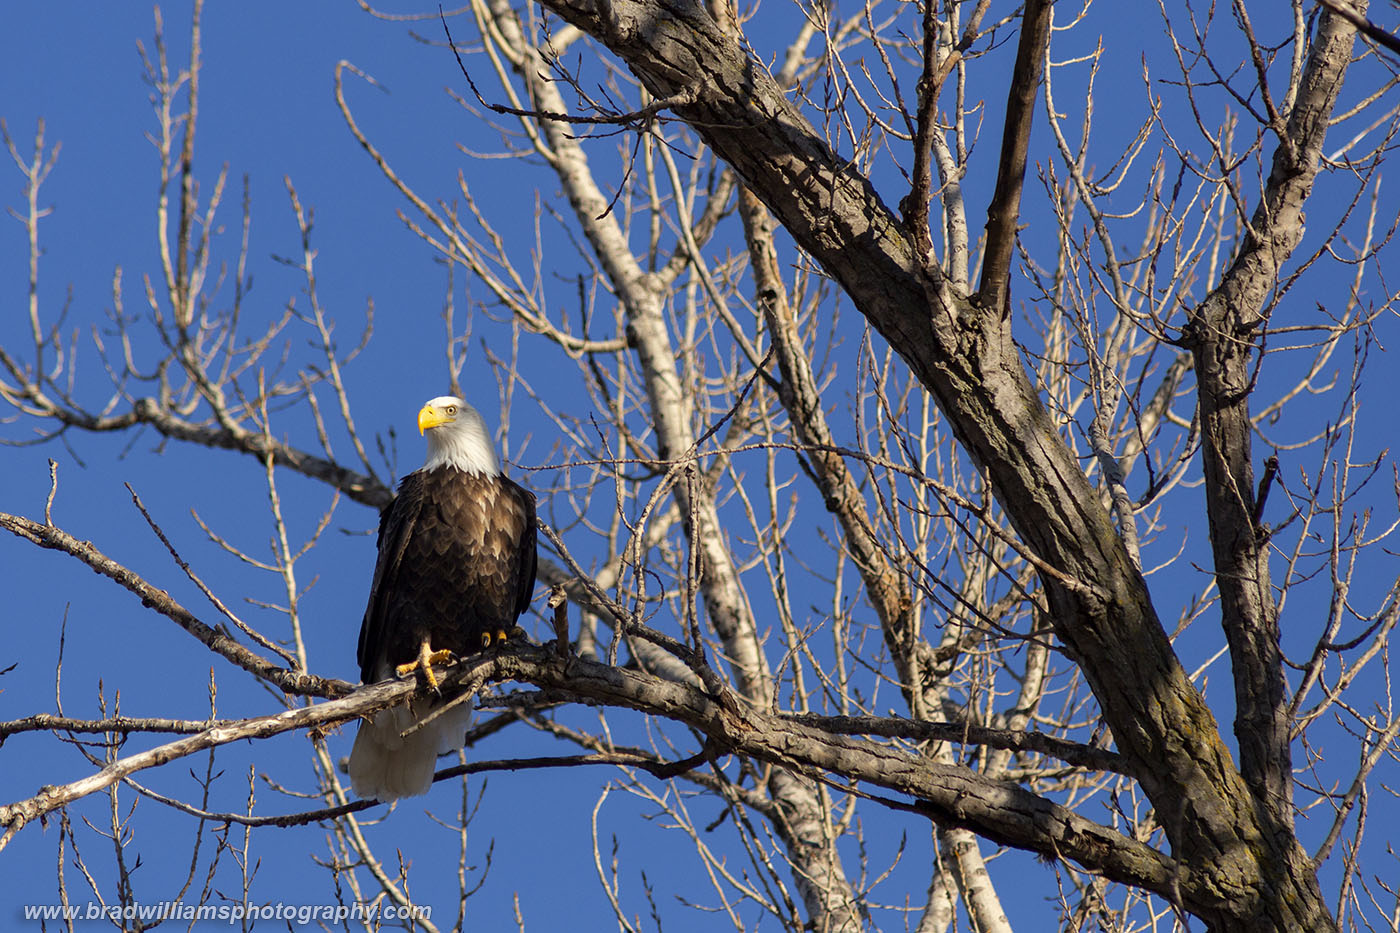 James Madison - A majestic bald eagle sits high in a cottonwood tree on a beautiful late winter afternoon.